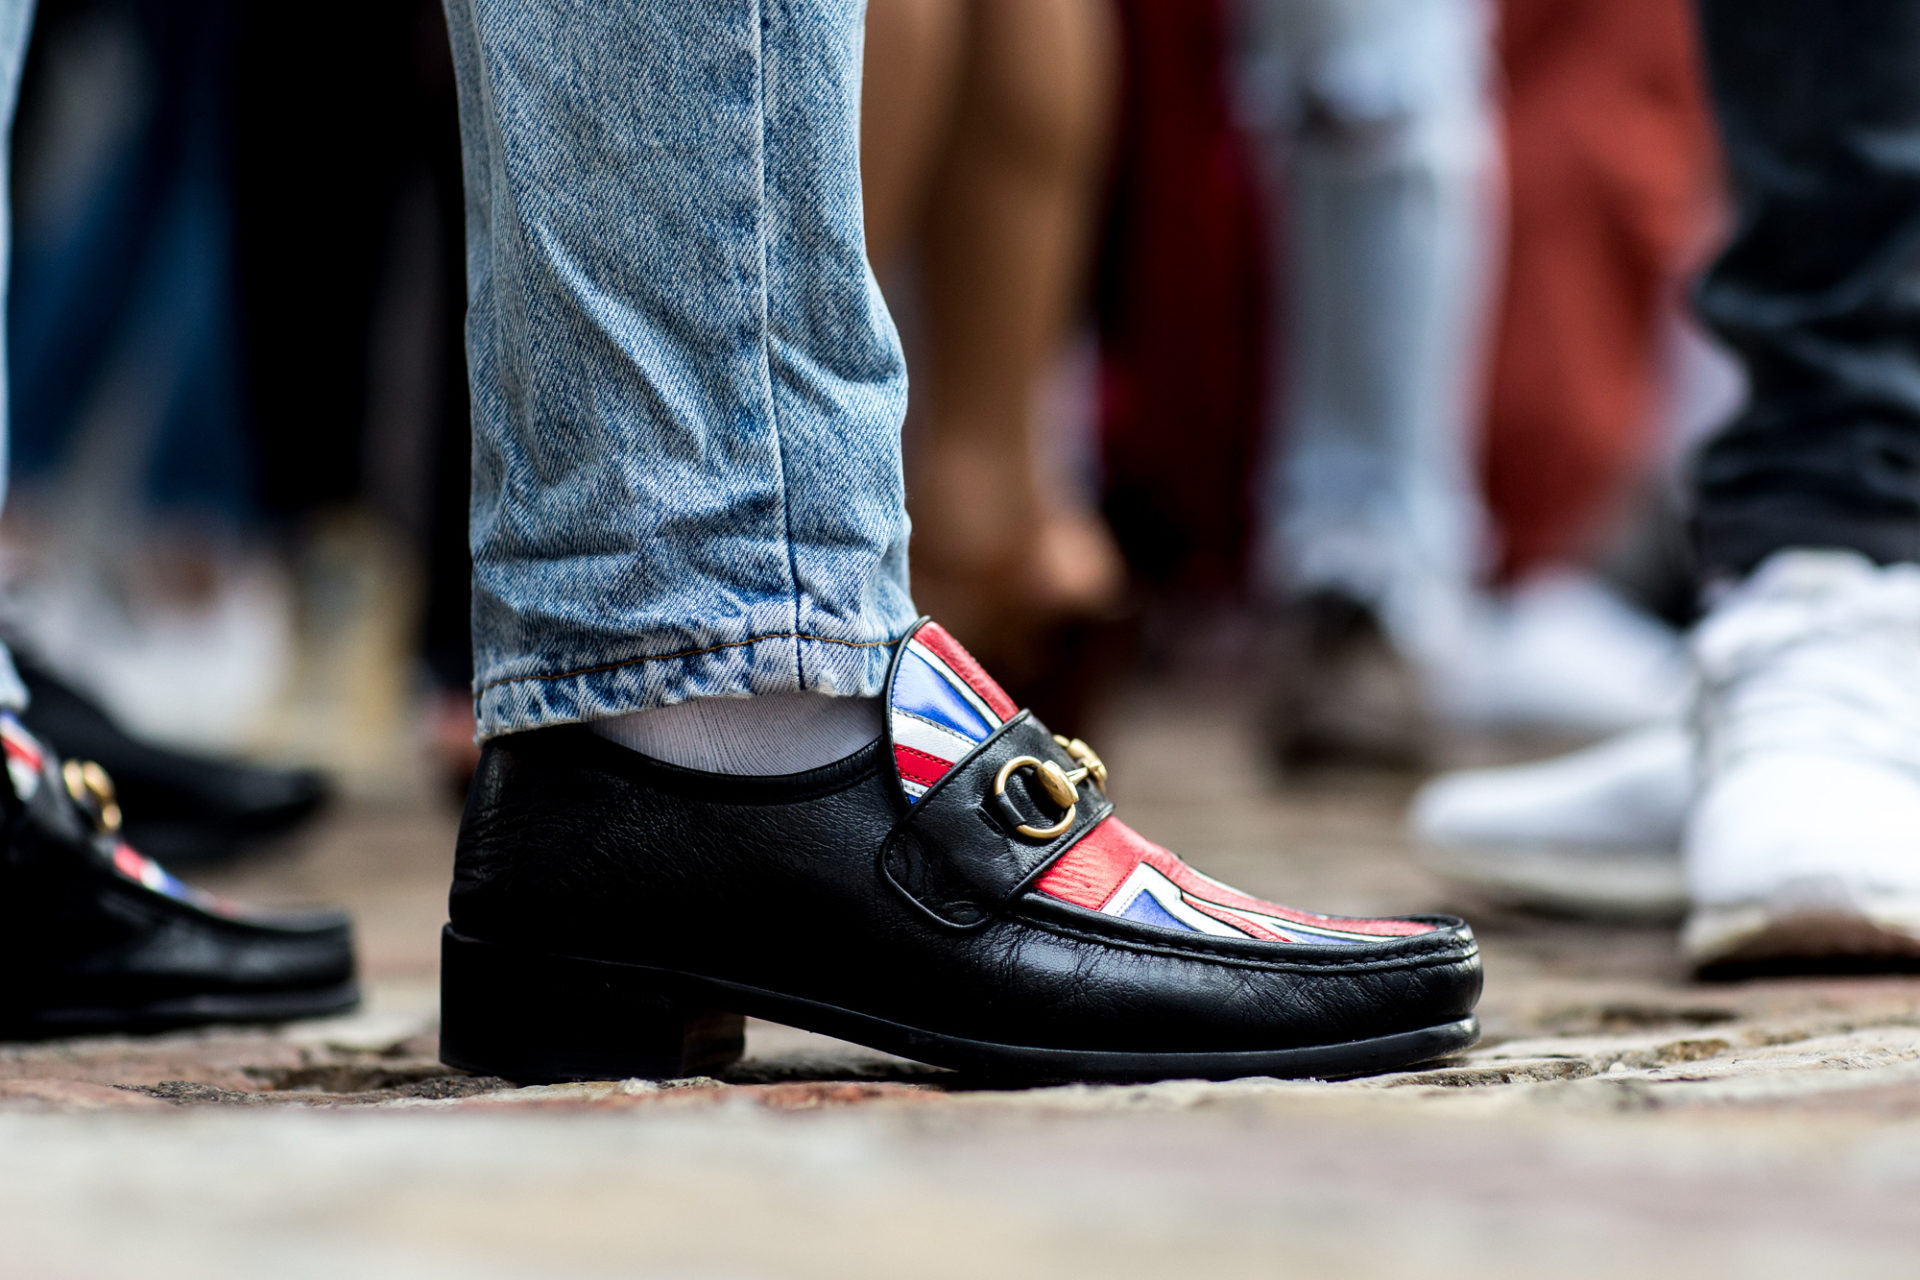 Street Style at Bread and Butter